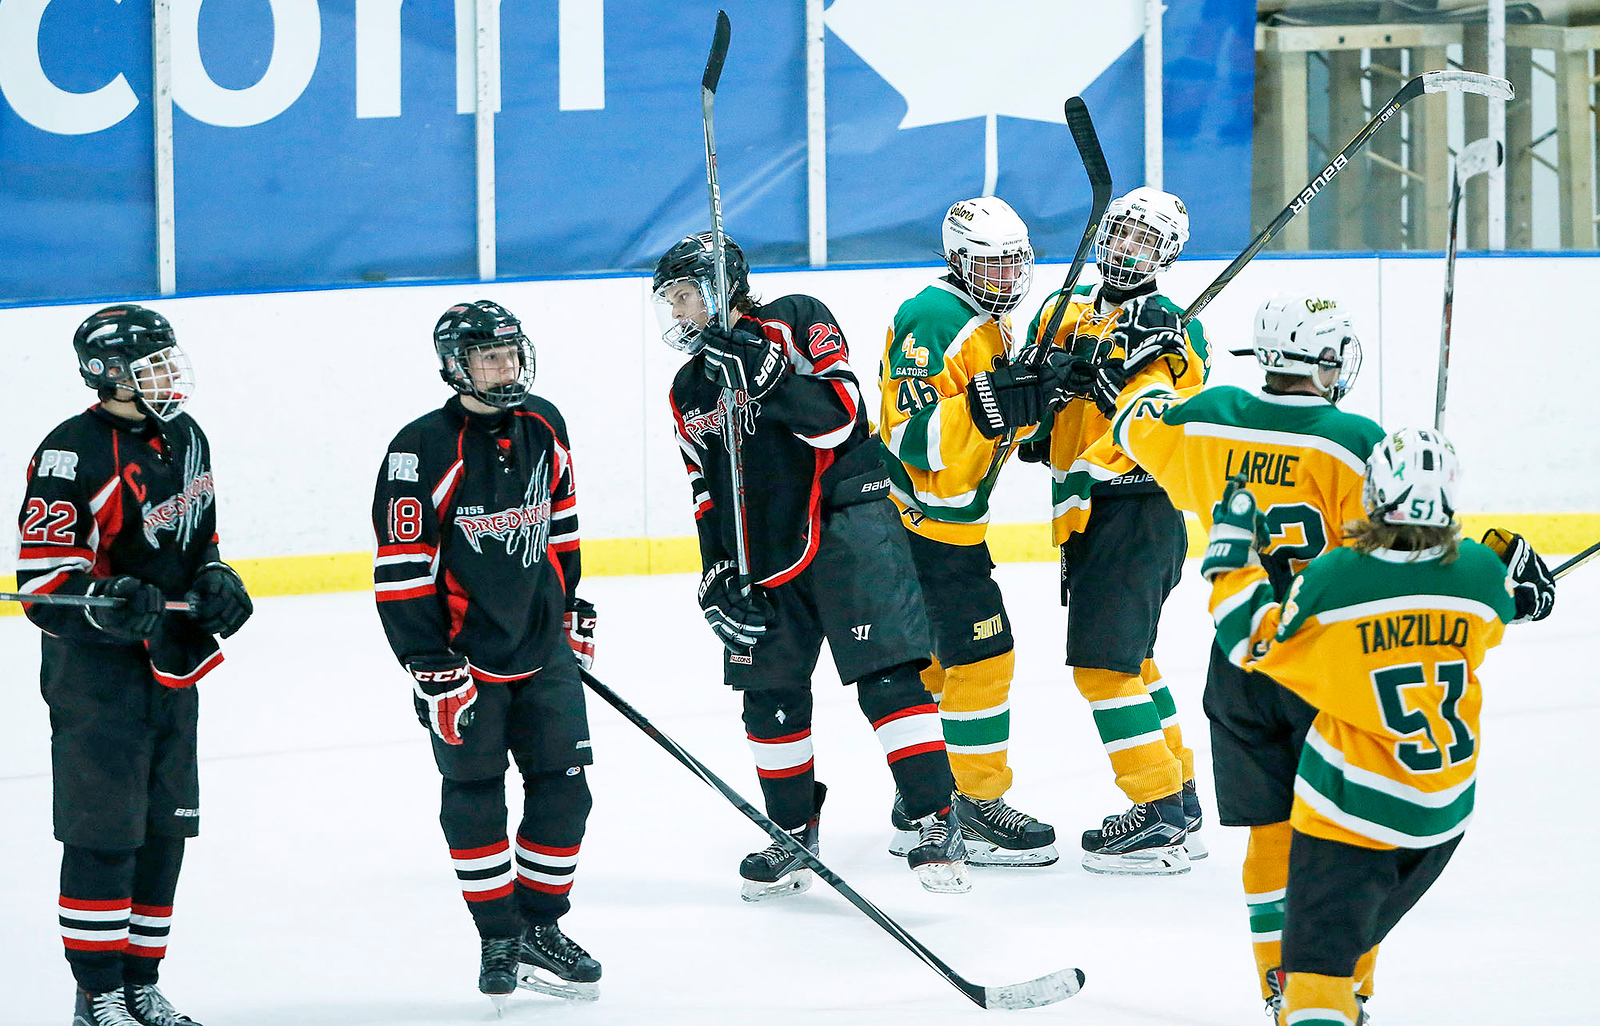 Midas Bacidore (46) from Crystal Lake South celebrates the game tying goal during the third period of their game against D155 at the Leafs Ice Center on Sunday, December 10, 2017 in West Dundee, Illinois. The game ended in a 3-3 tie. John Konstantaras photo for Shaw Media